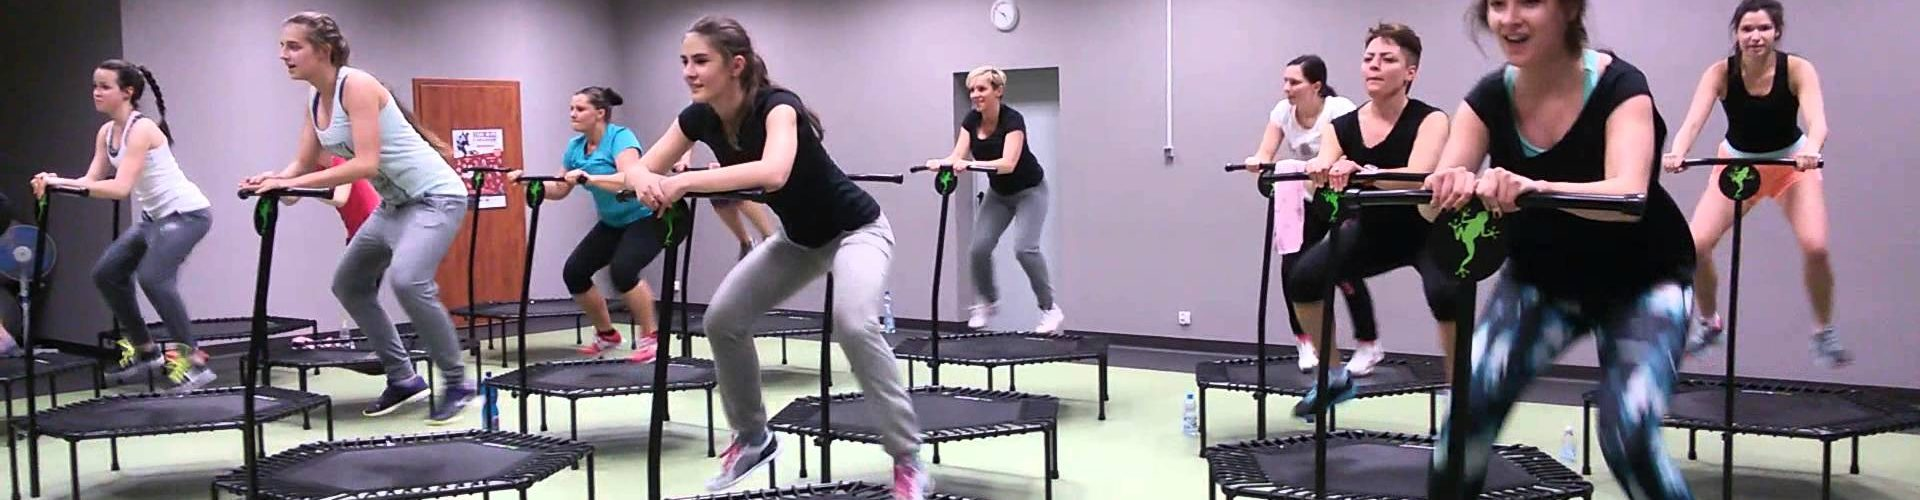 Trampoline can be a great workout for cross-training for runners